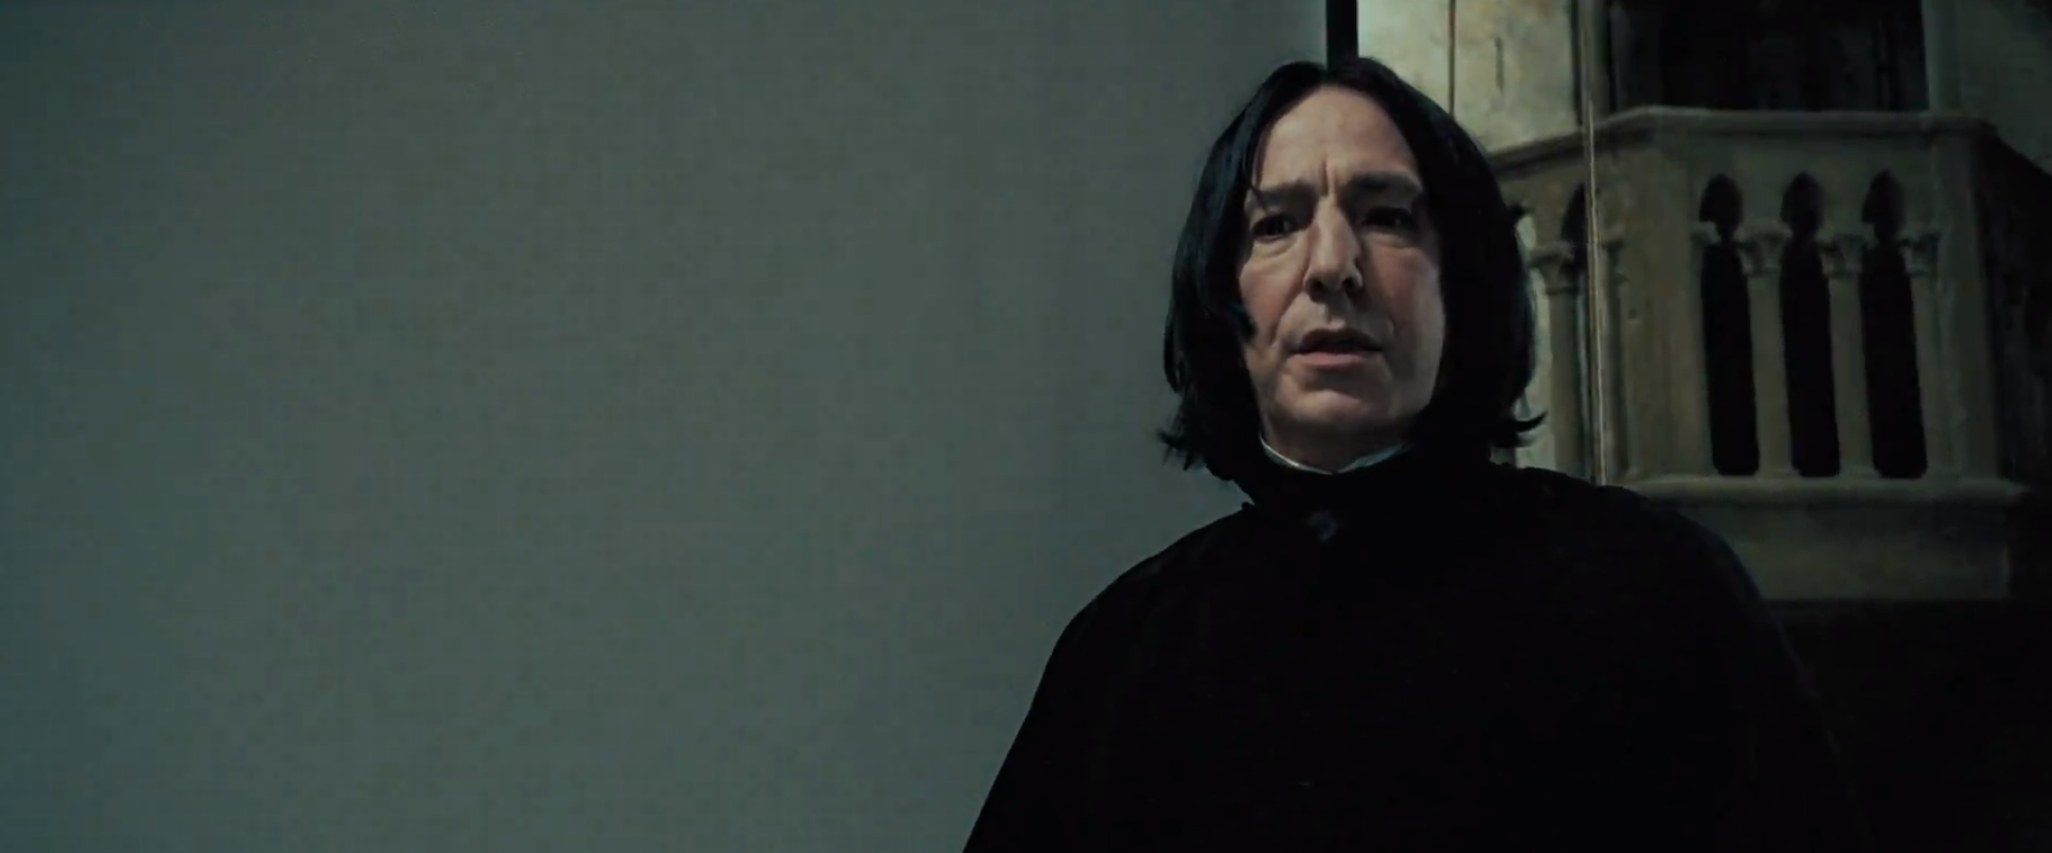 Snape looking down at Harry Potter telling him to turn to a certain page